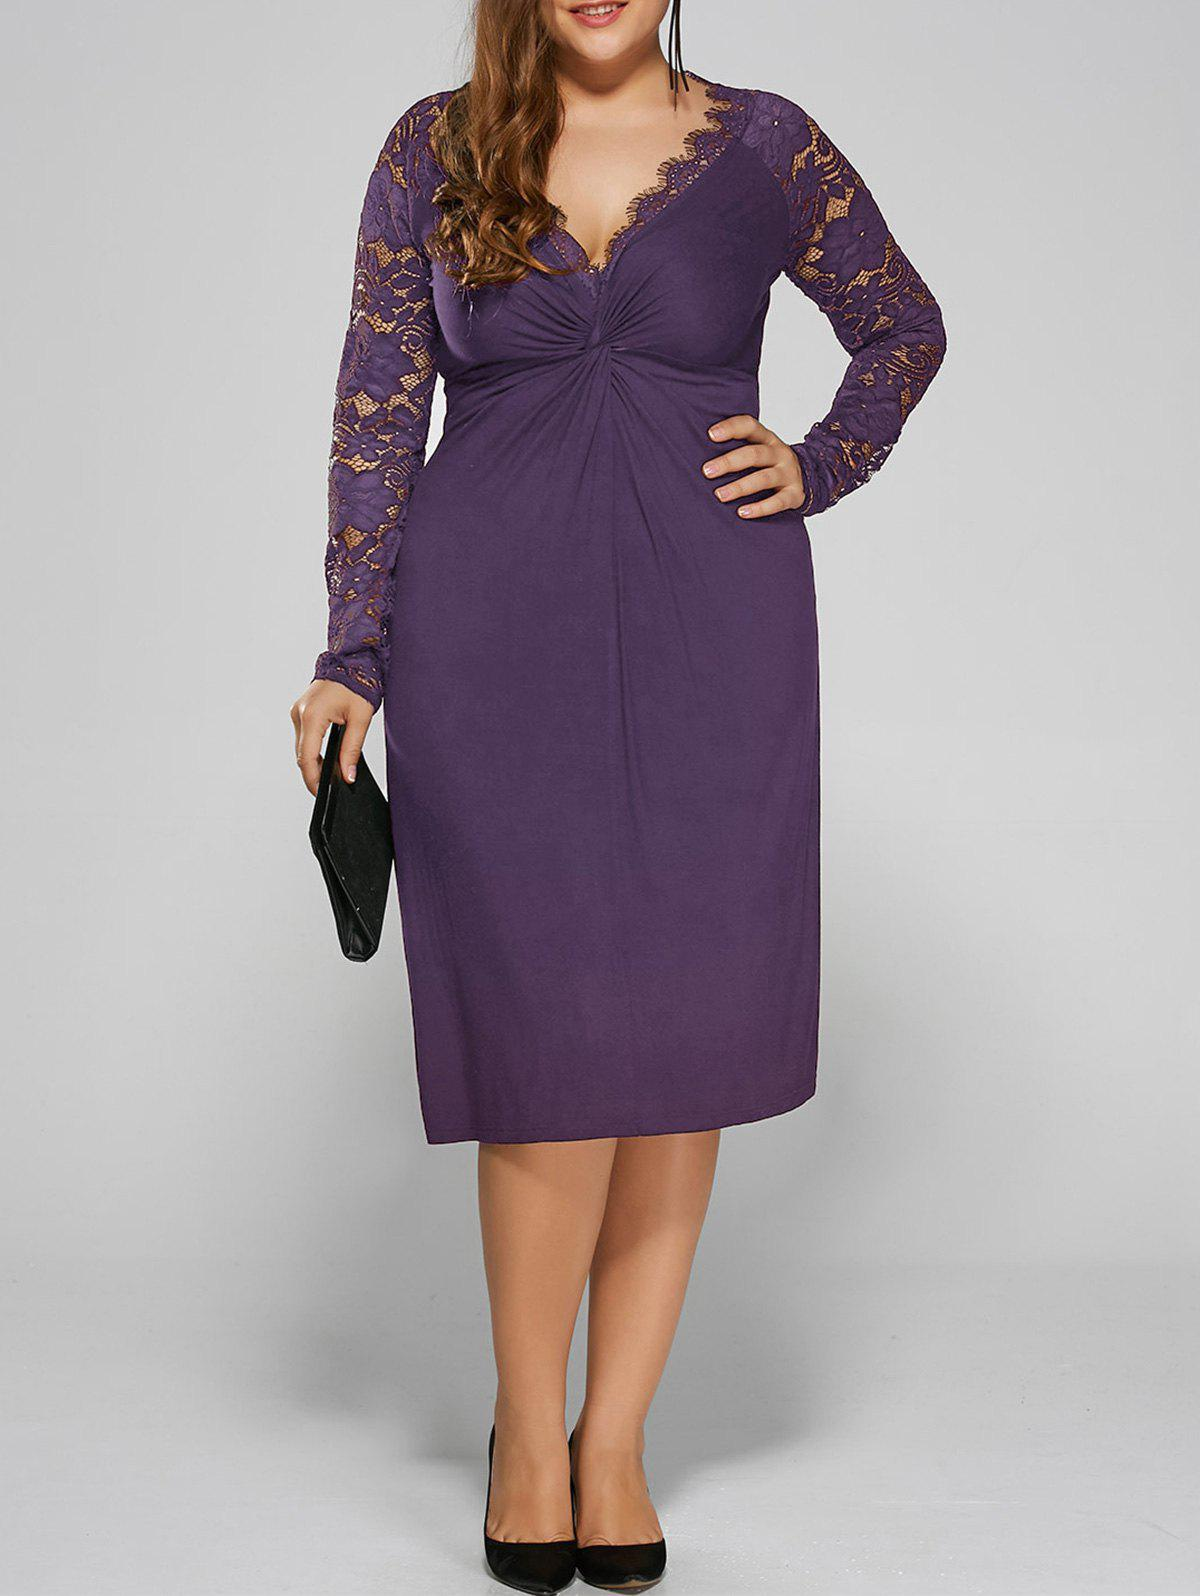 Plus Size Twist Front Lace Insert Fitted DressWOMEN<br><br>Size: 4XL; Color: PURPLE; Style: Brief; Material: Polyester,Spandex; Silhouette: Straight; Dresses Length: Knee-Length; Neckline: Plunging Neck; Sleeve Length: Long Sleeves; Pattern Type: Floral; With Belt: No; Season: Fall,Spring; Weight: 0.3900kg; Package Contents: 1 x Dress;